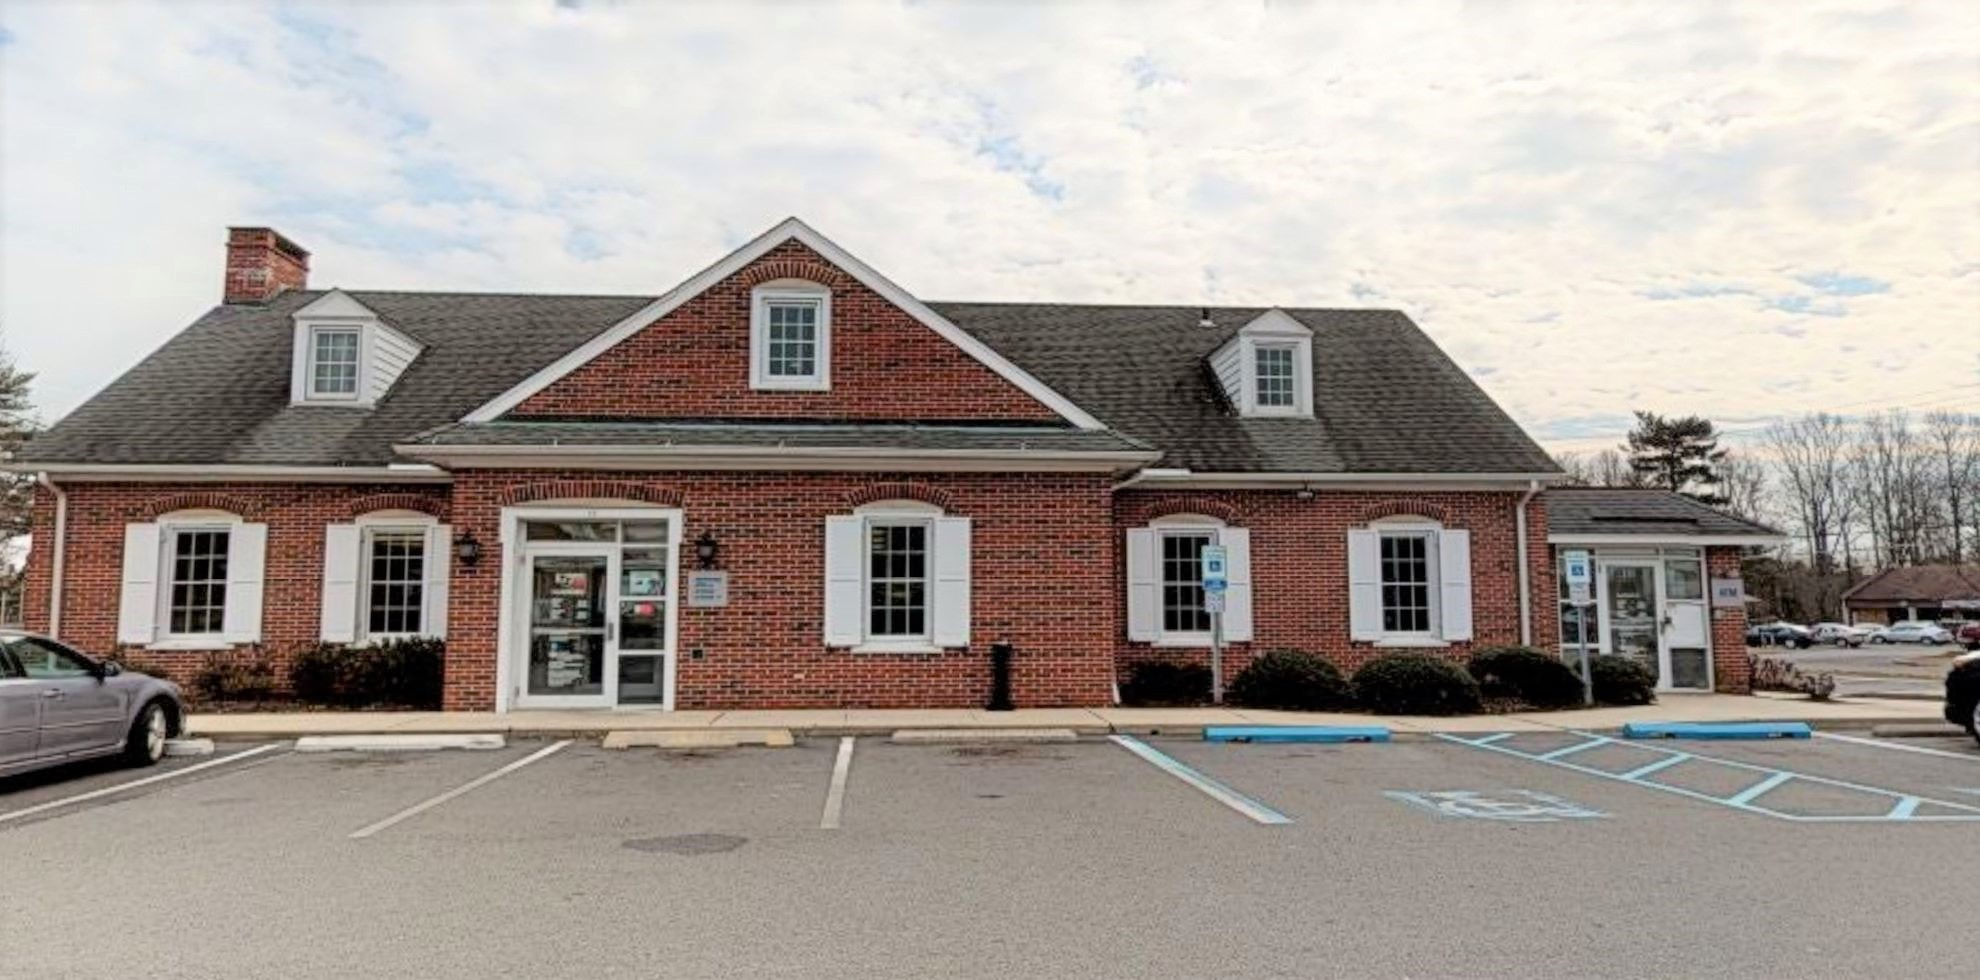 Bank of America financial center with walk-up ATM   10 Juliustown Rd, Browns Mills, NJ 08015